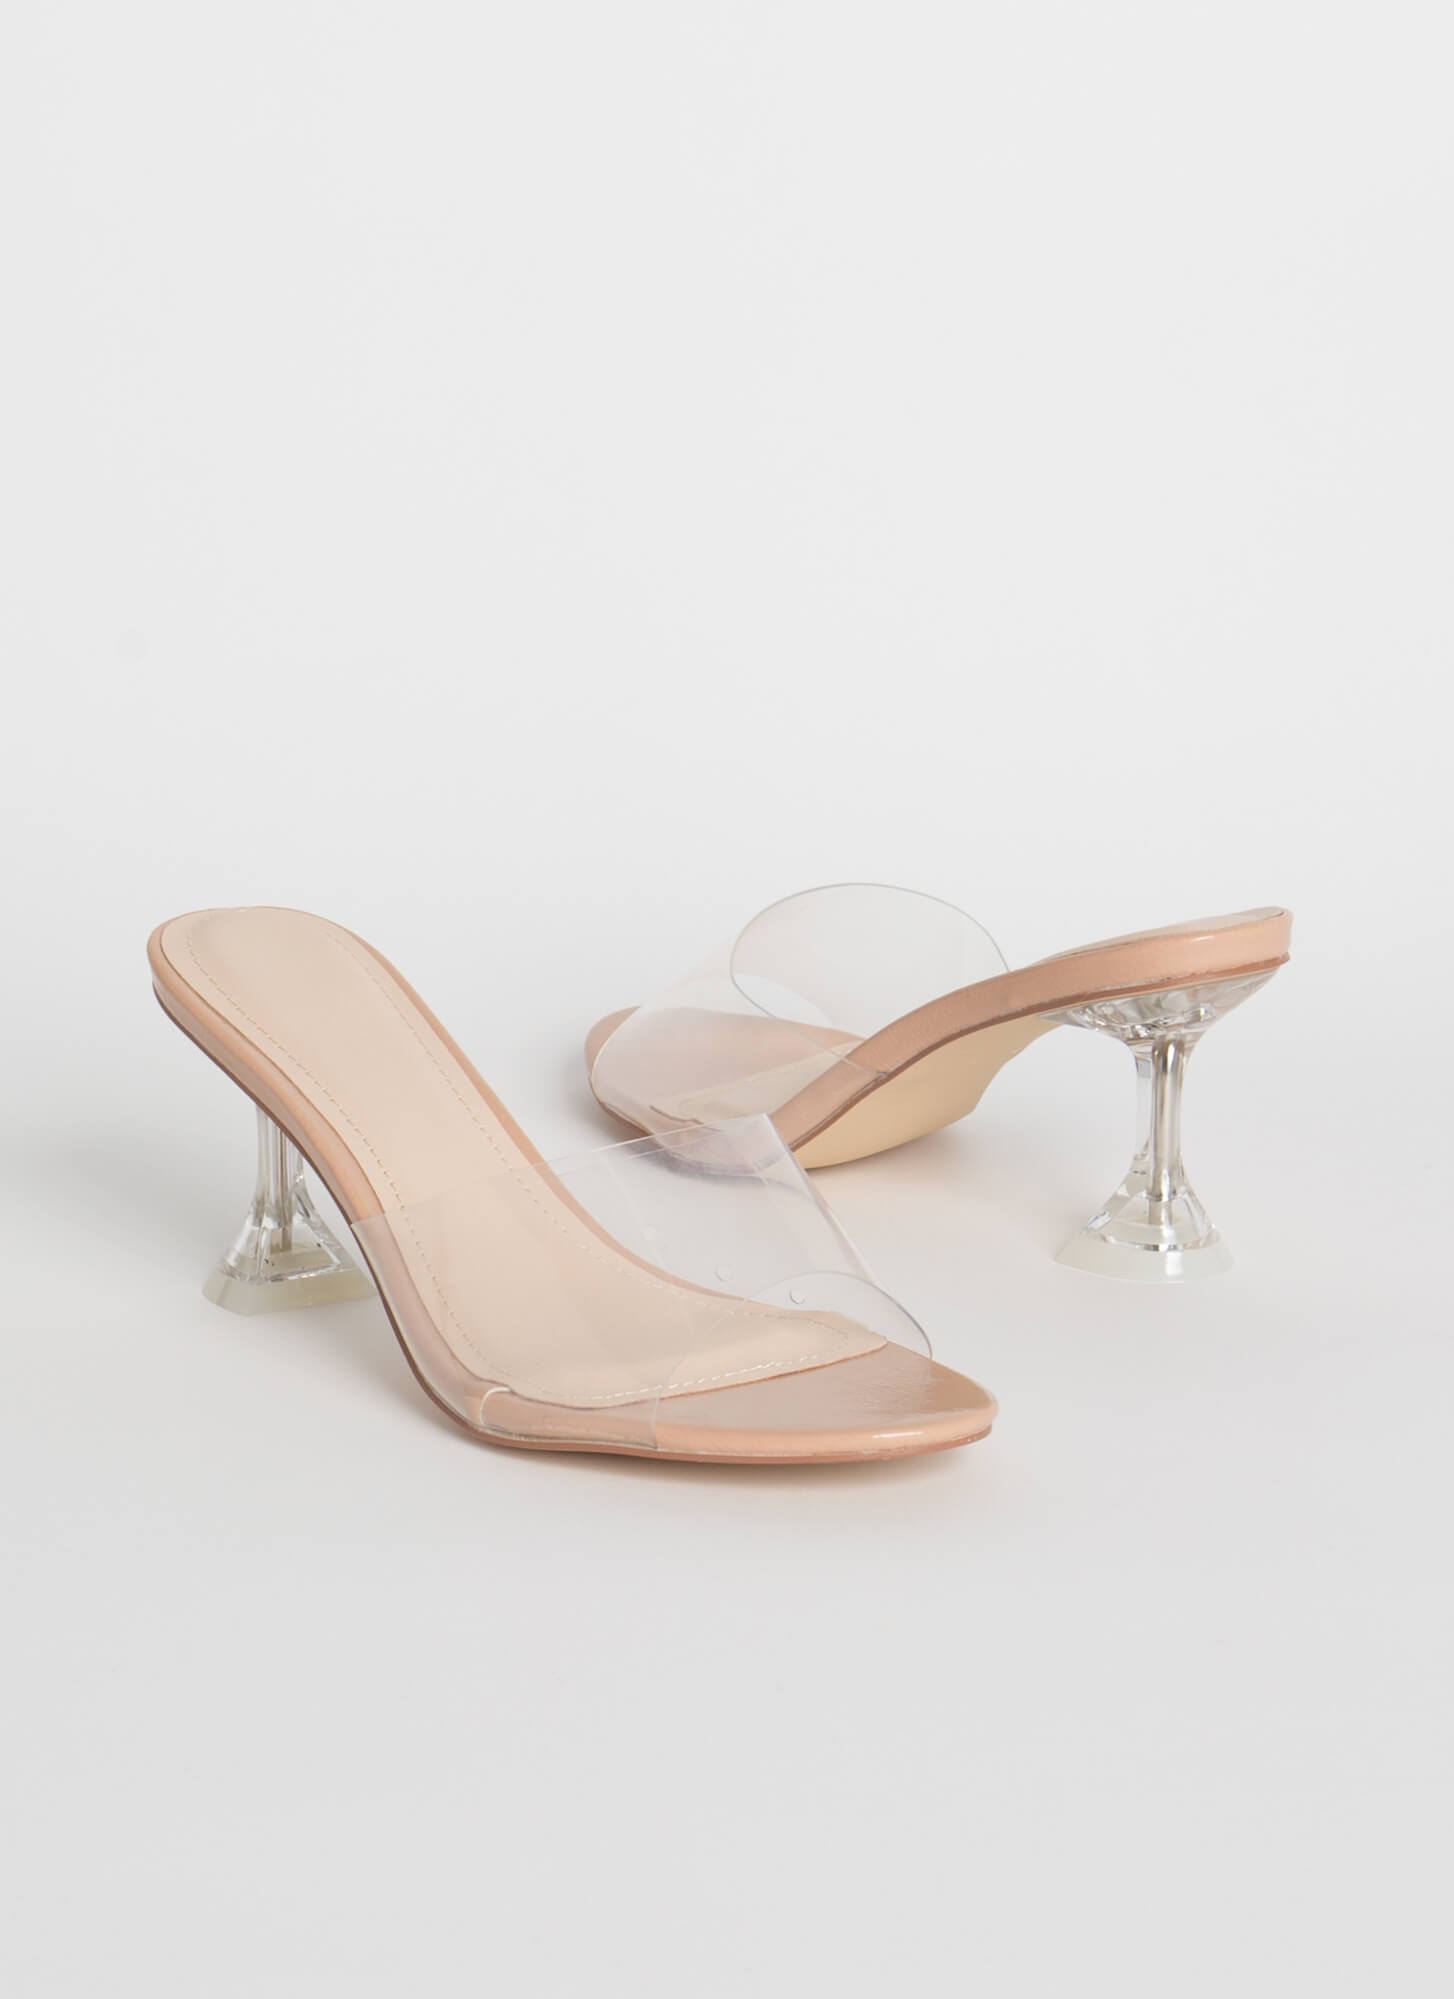 Base Instinct Clear Illusion Mule Heels